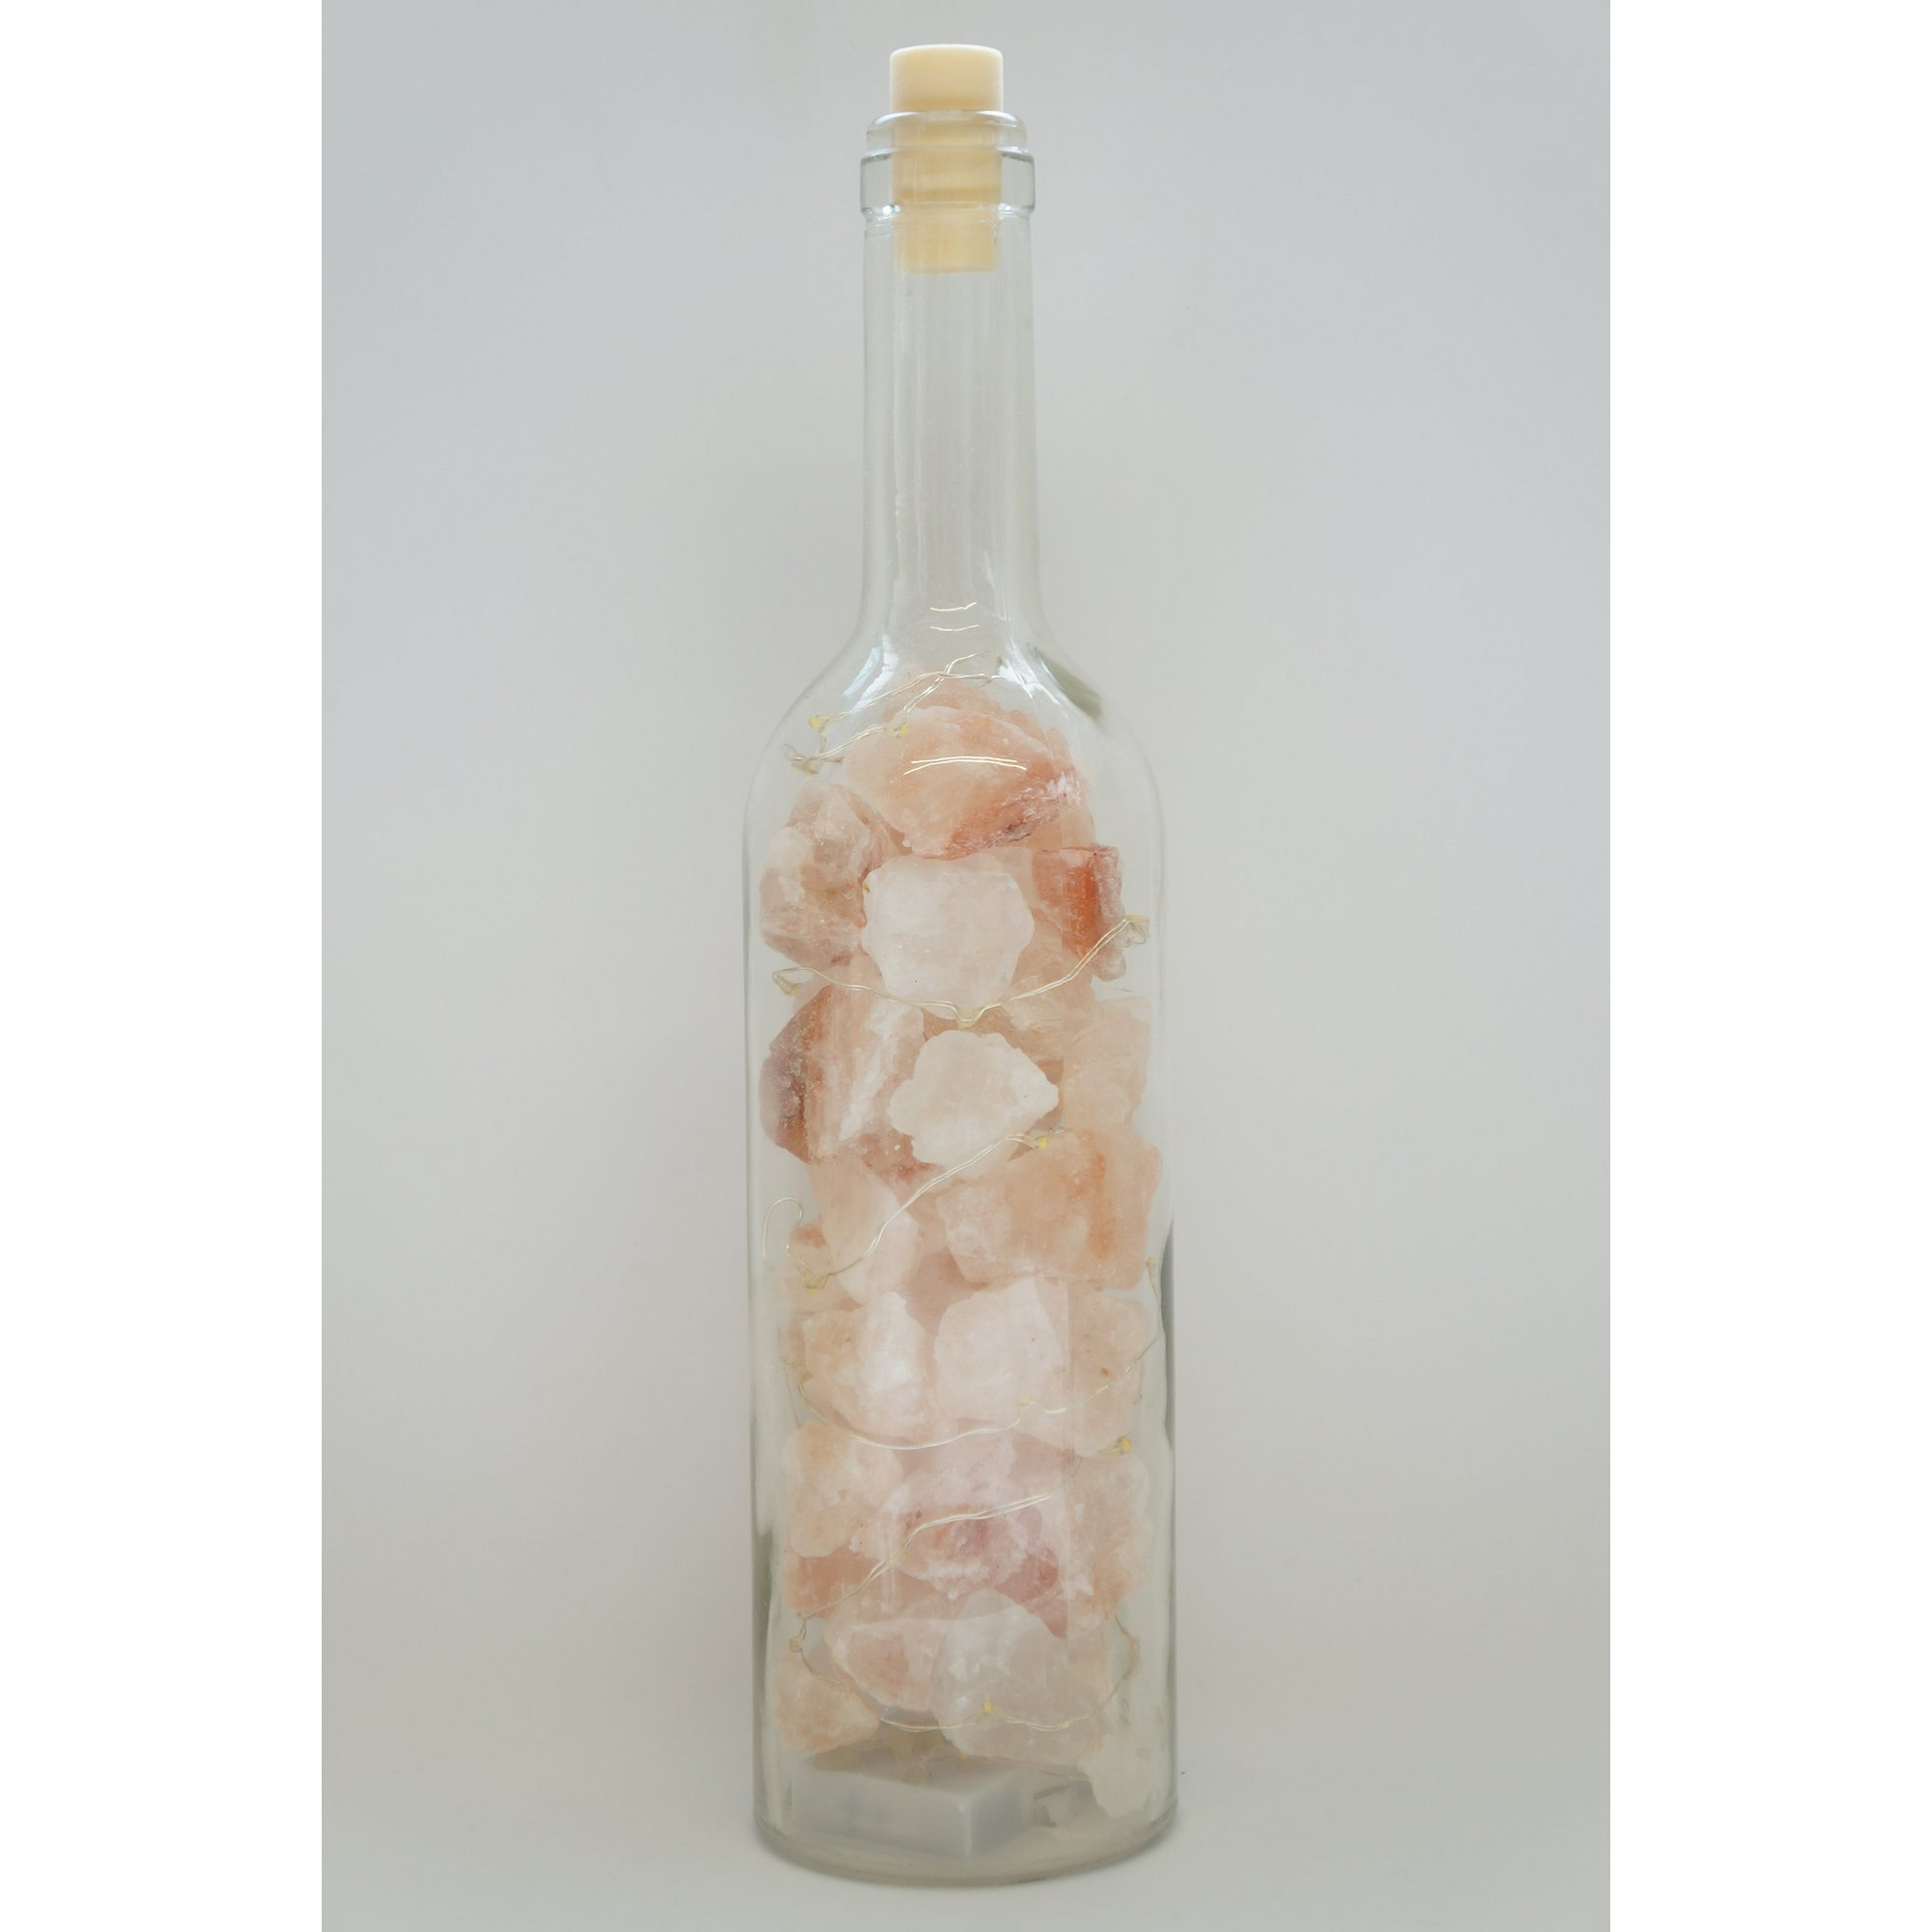 Image of Himalayan Pink Salt Glass Bottle Lamp with String Lights